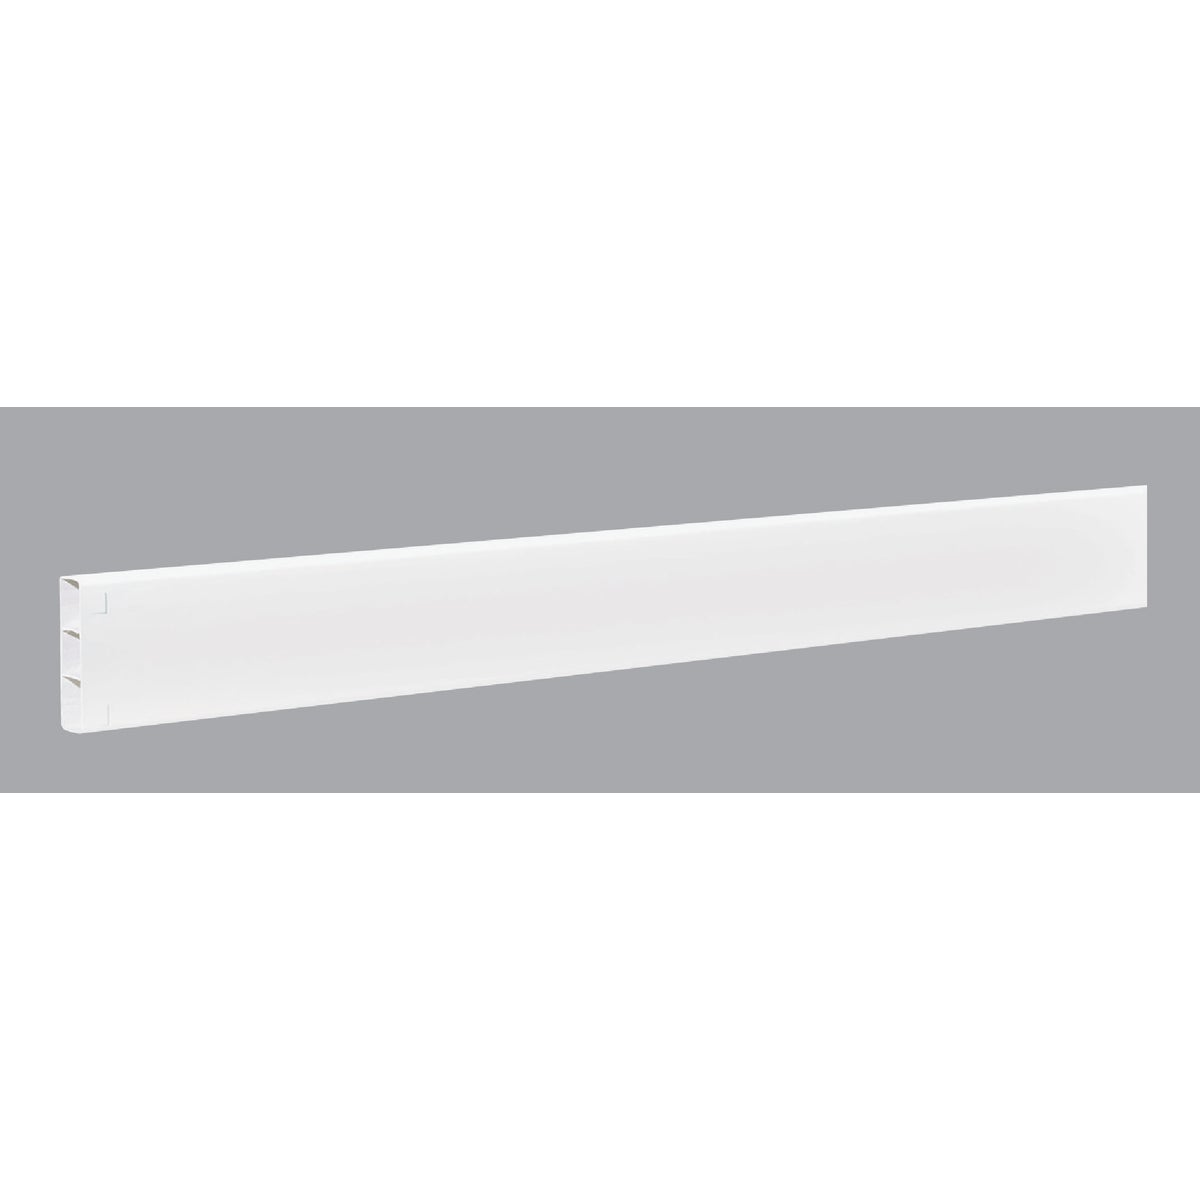 2X6X96 WHT RIBBED RAIL - FW196B by Genova Bldg Products